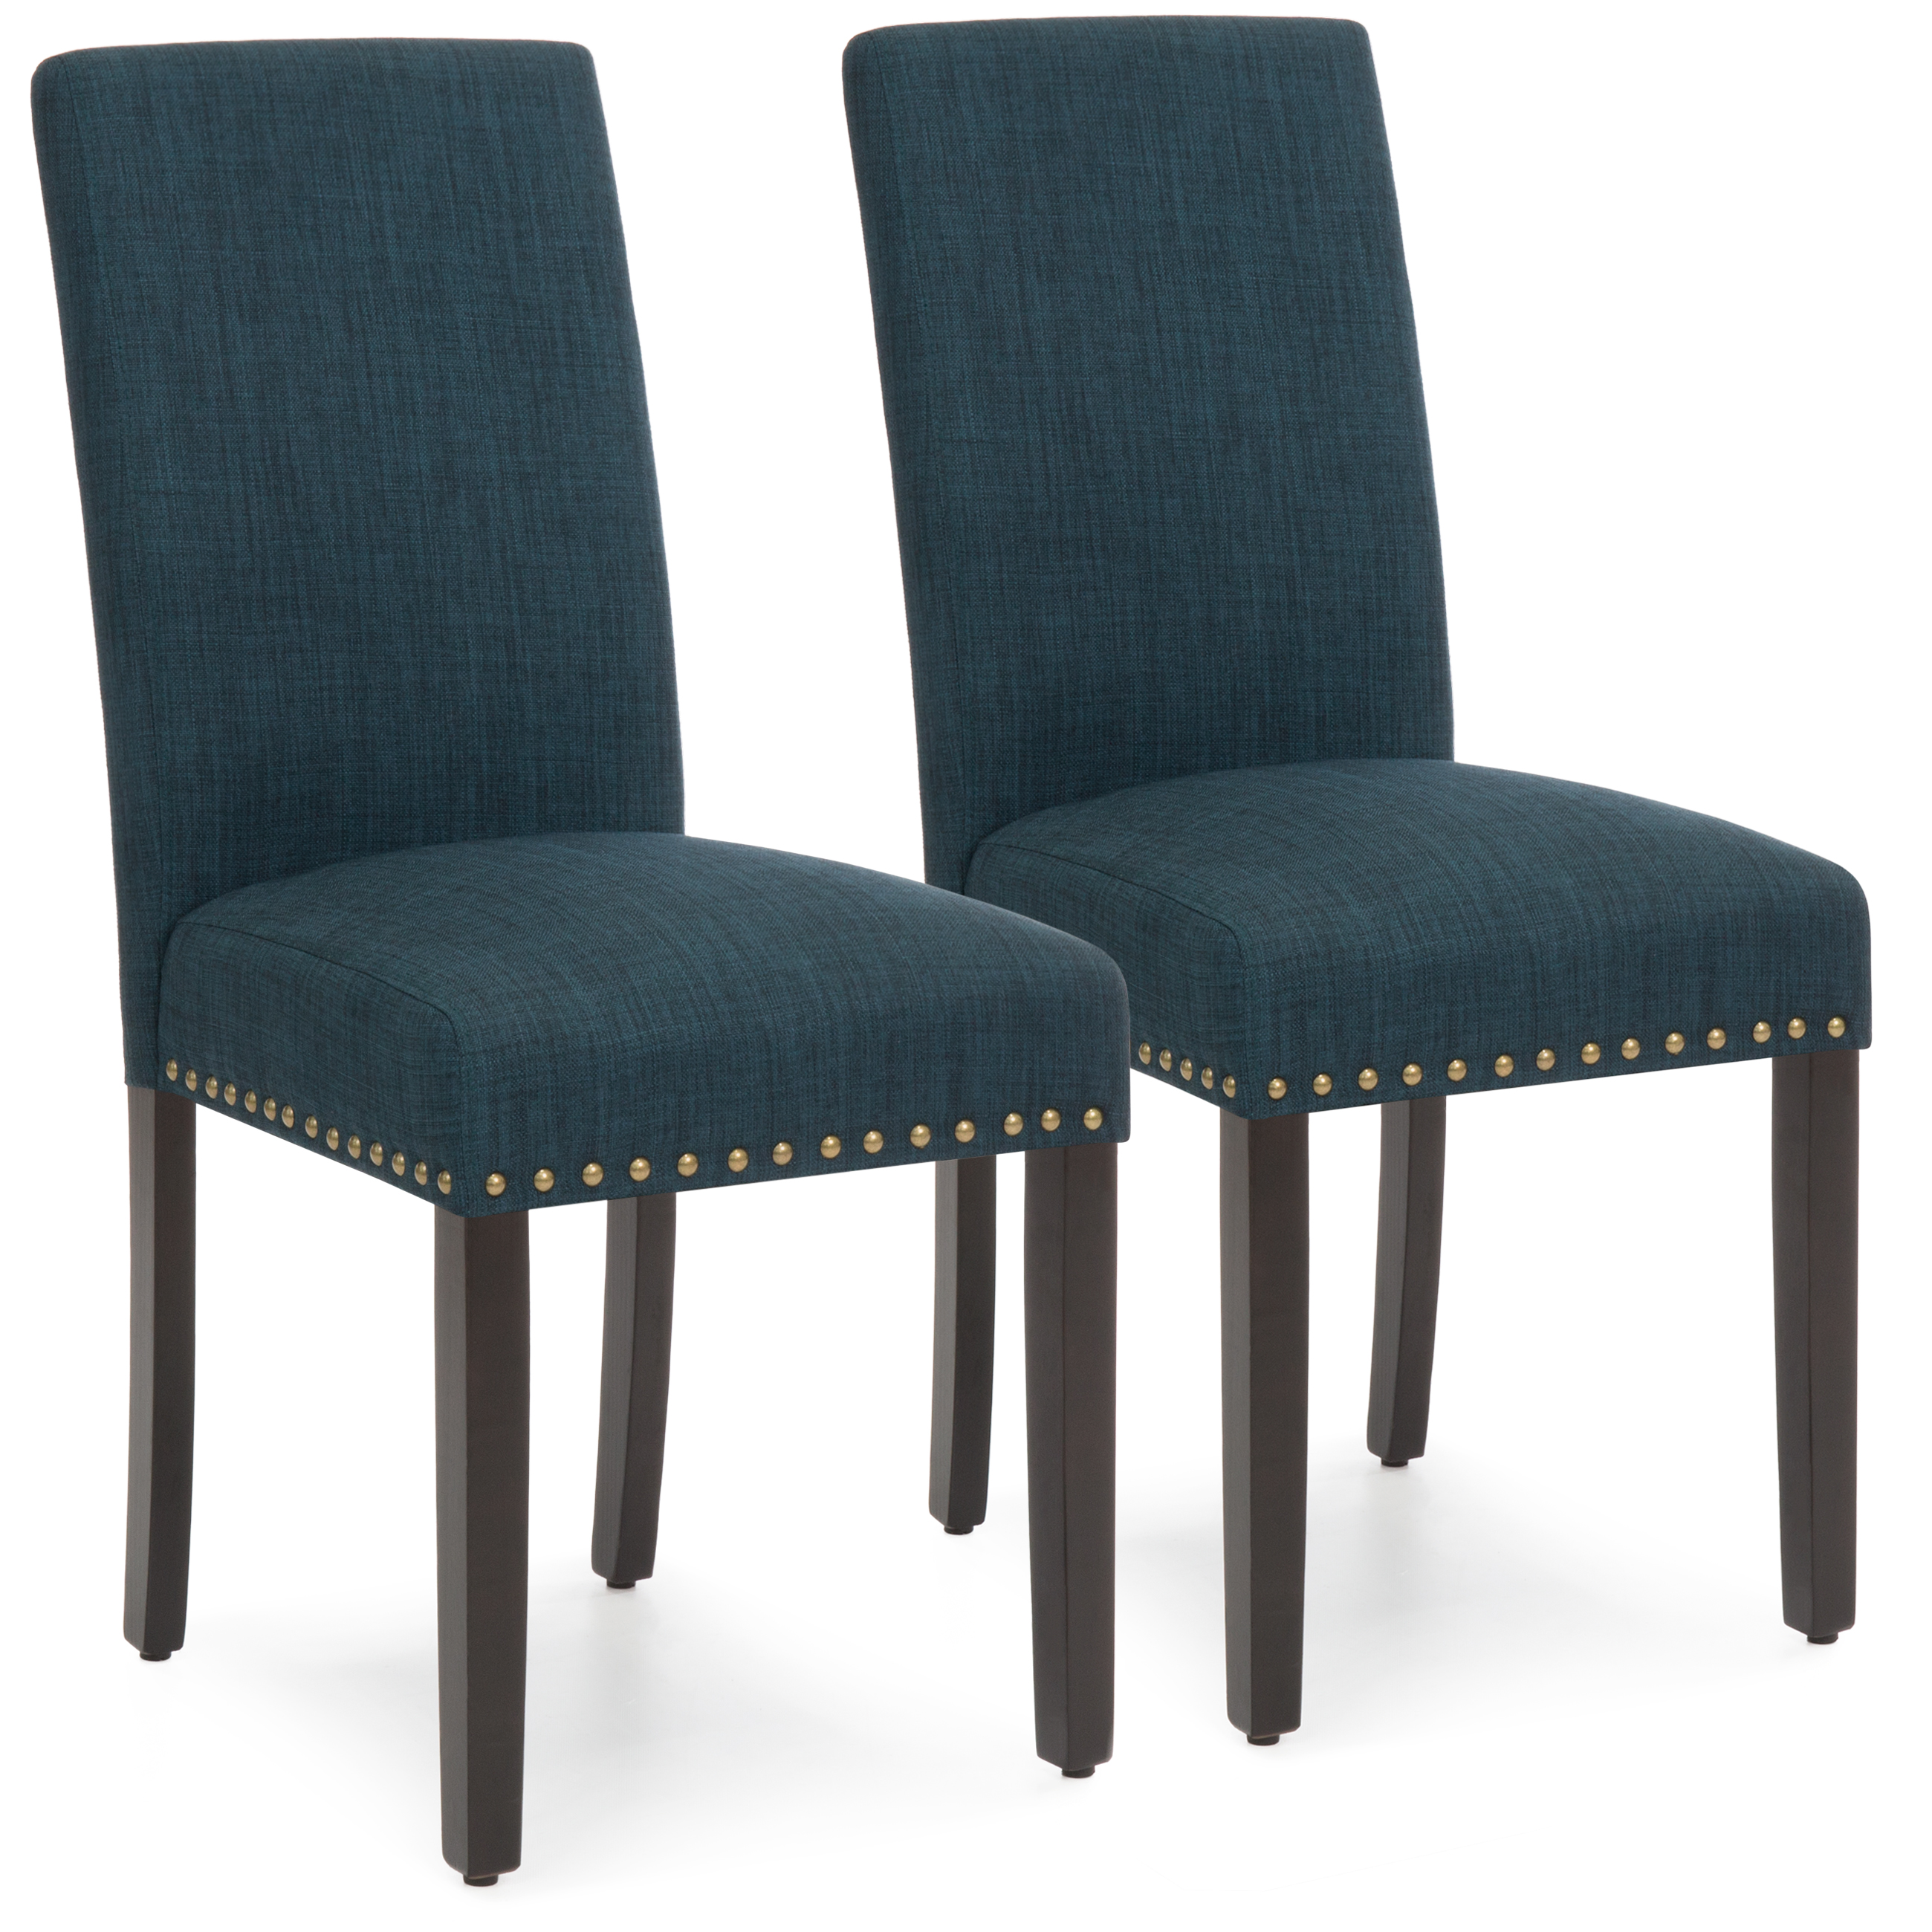 Best Choice Products Set of 2 Modern Contemporary Nail Head Upholstered Fabric Parsons Dining Chairs (Graphite Blue) by Best Choice Products